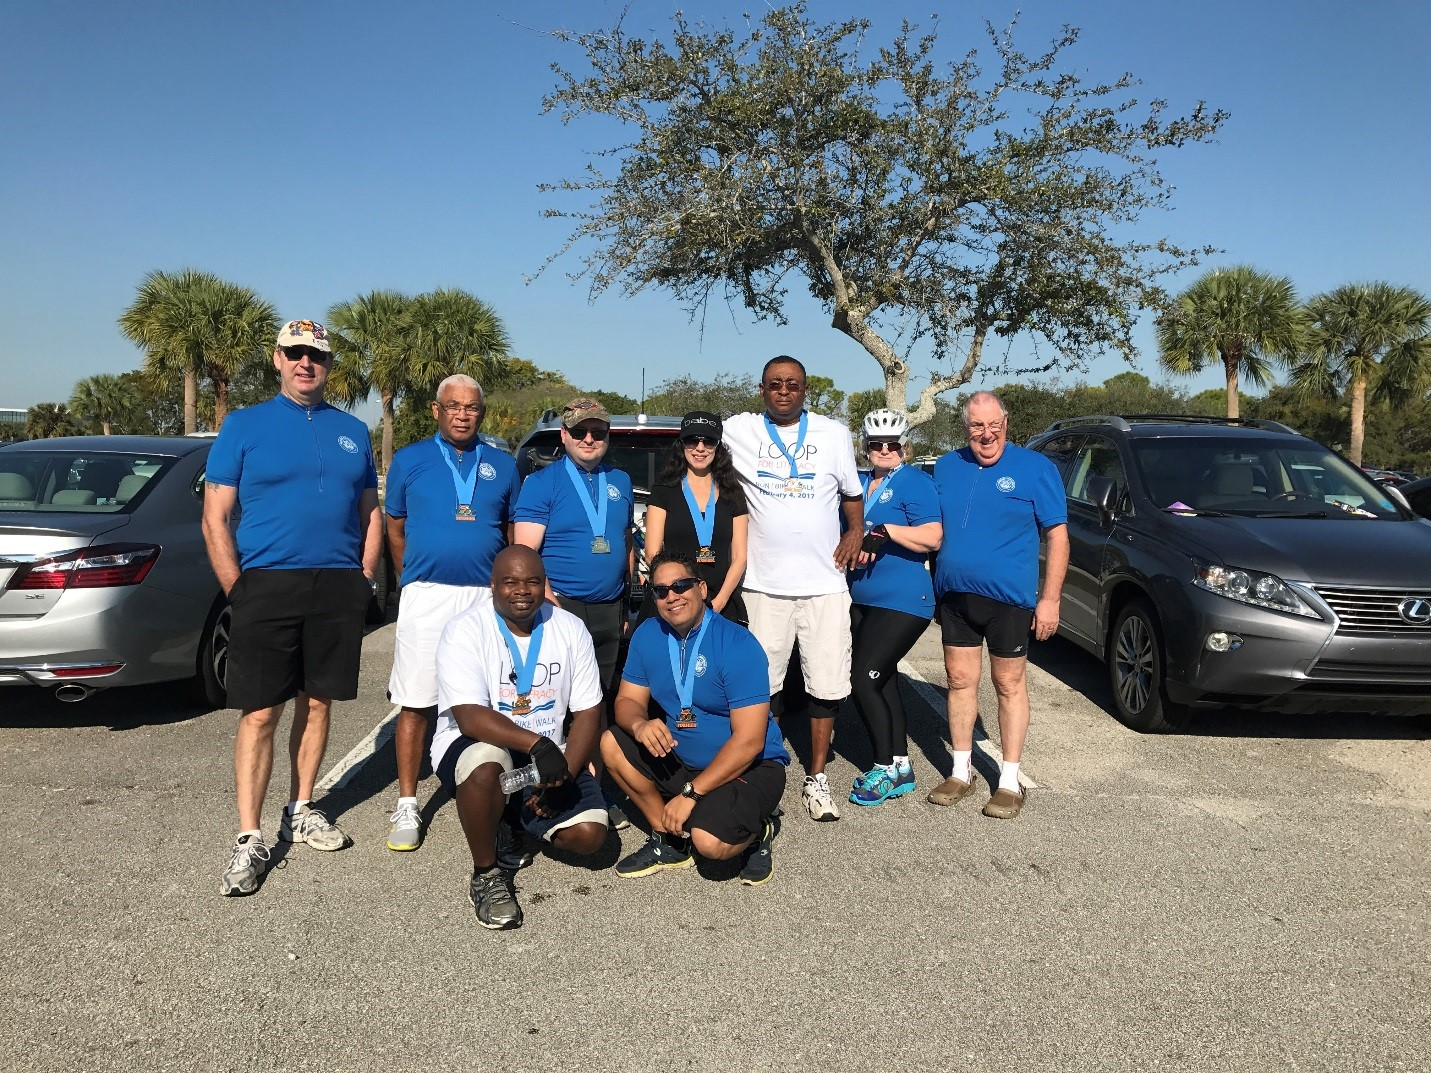 Keiser University Sponsors and Participates in Loop the Lake Event